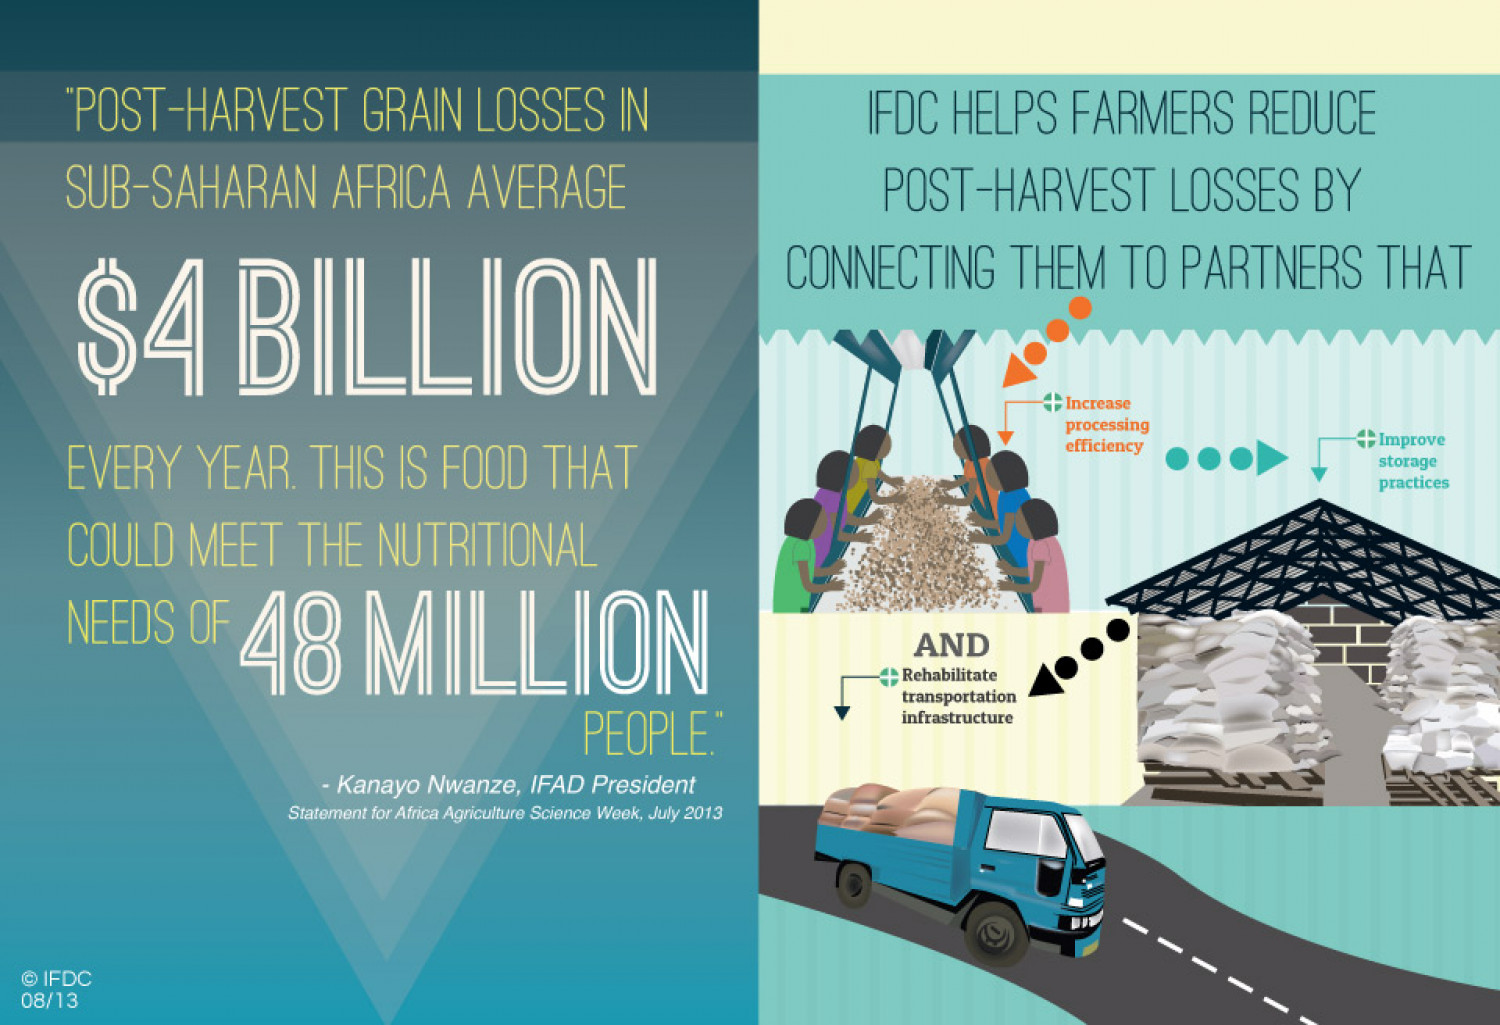 Post-Harvest Grain Losses in Sub-Saharan Africa Infographic